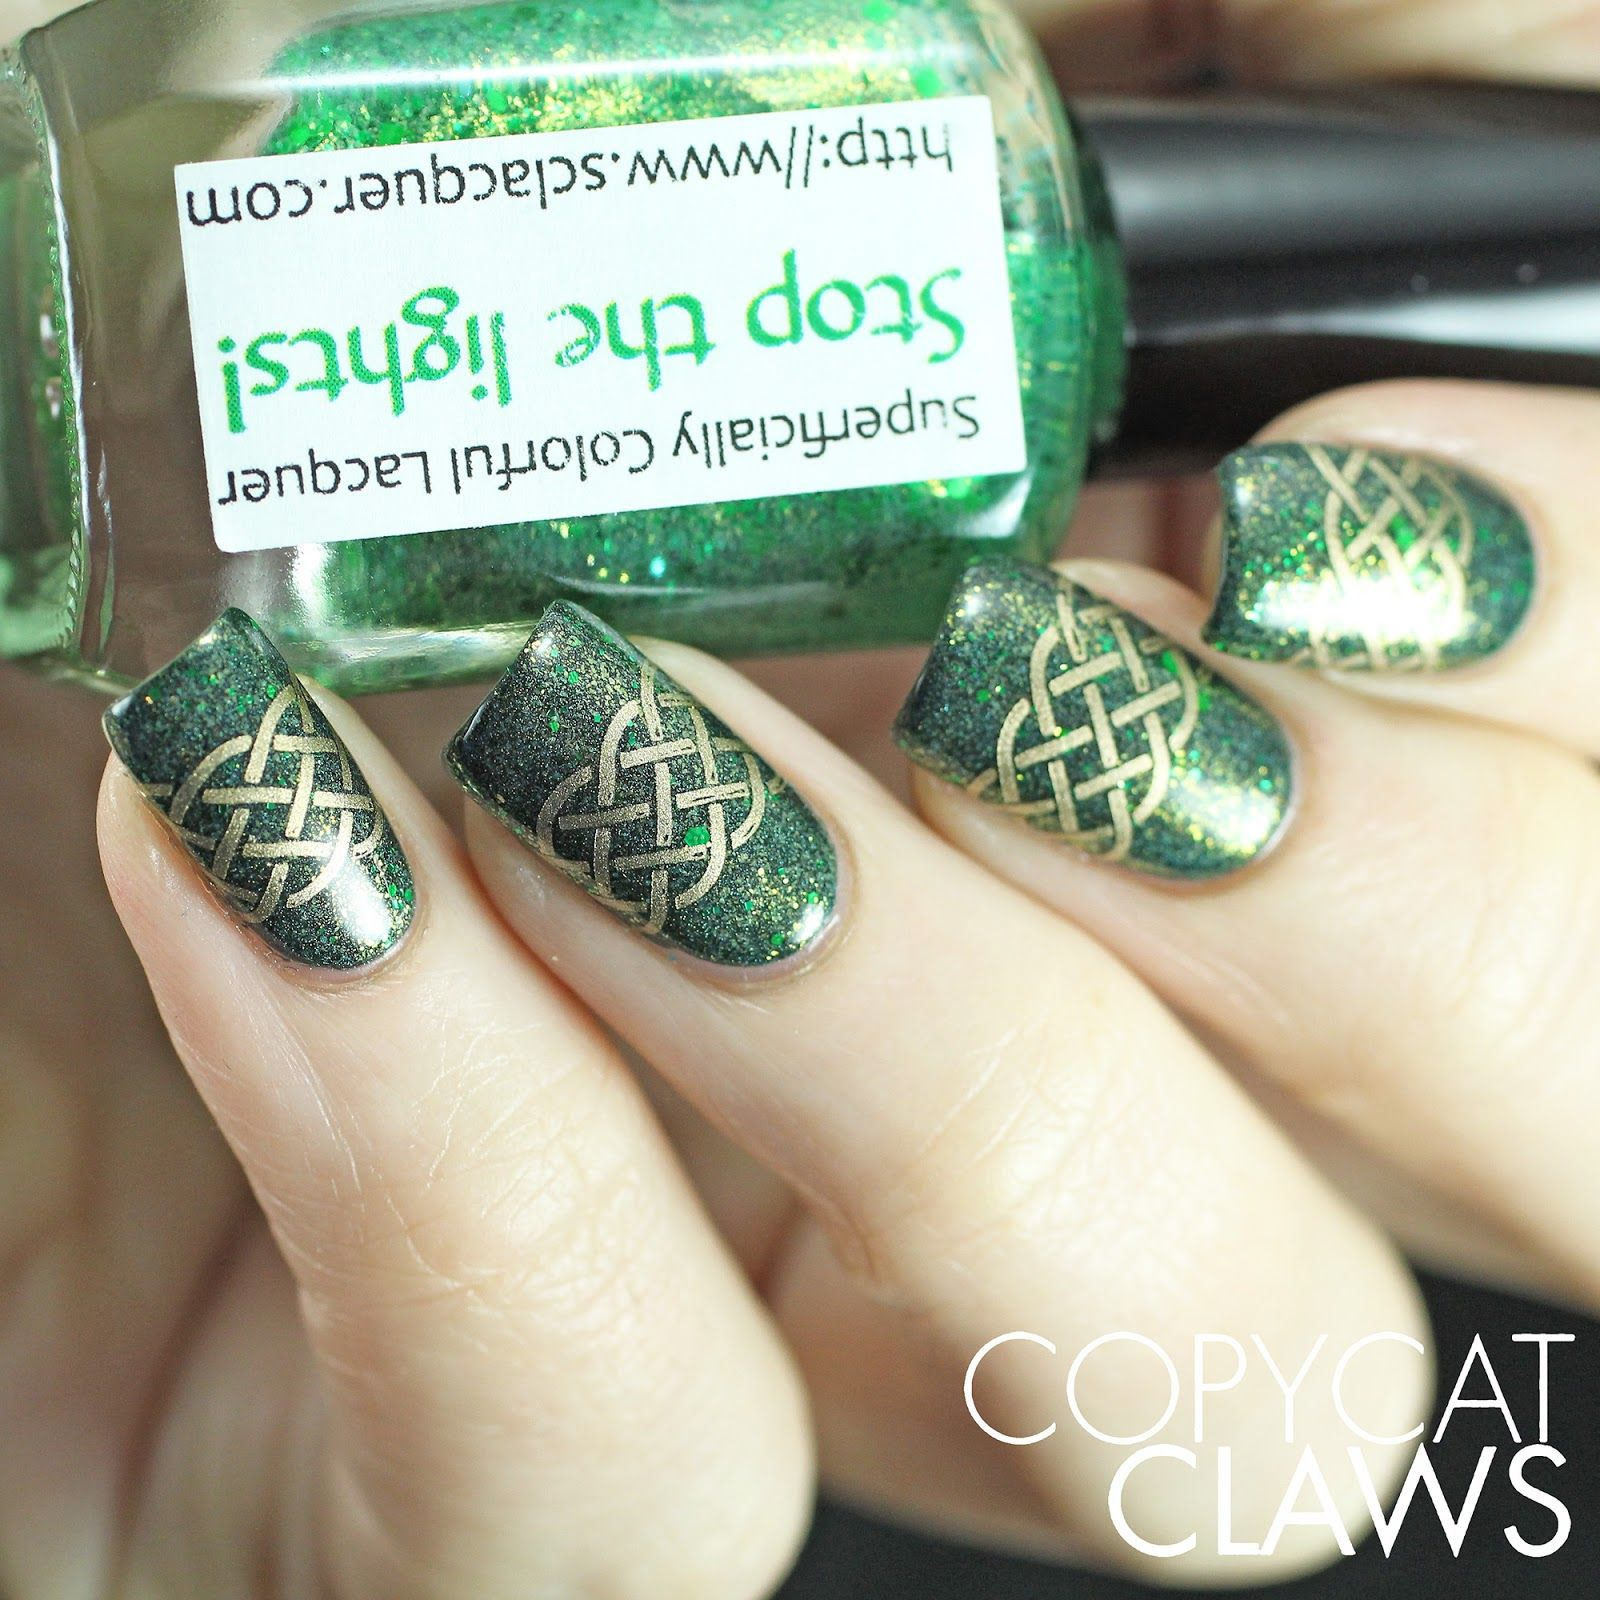 Copycat Claws: St. Patrick\'s Day Nail Stamping with Superficially ...